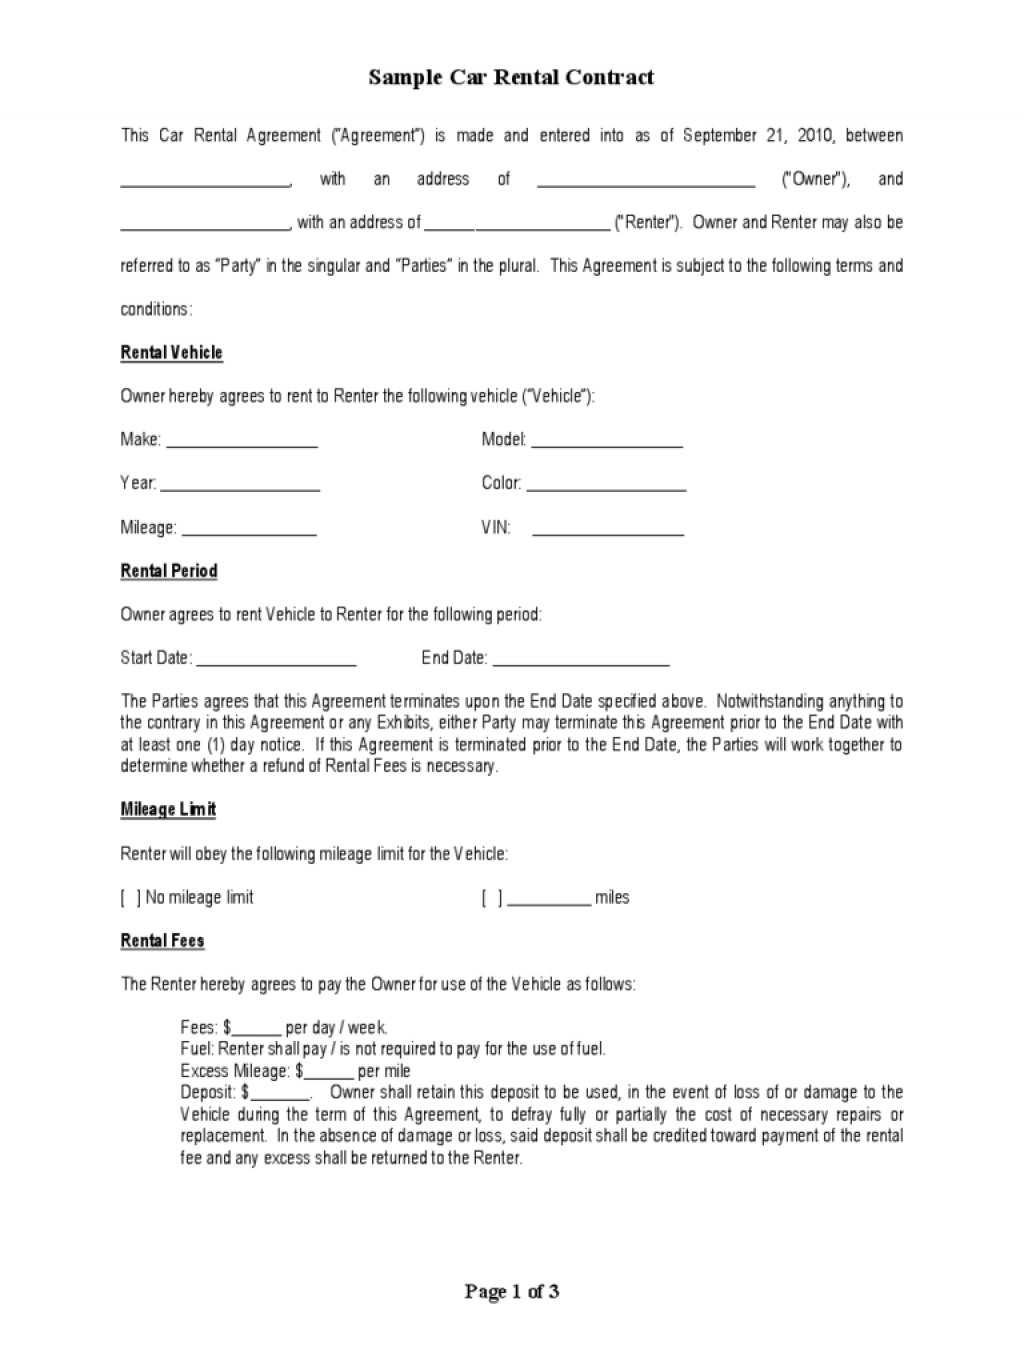 014 Fascinating Car Rental Agreement Template Design  Vehicle Rent To Own South Africa SingaporeLarge